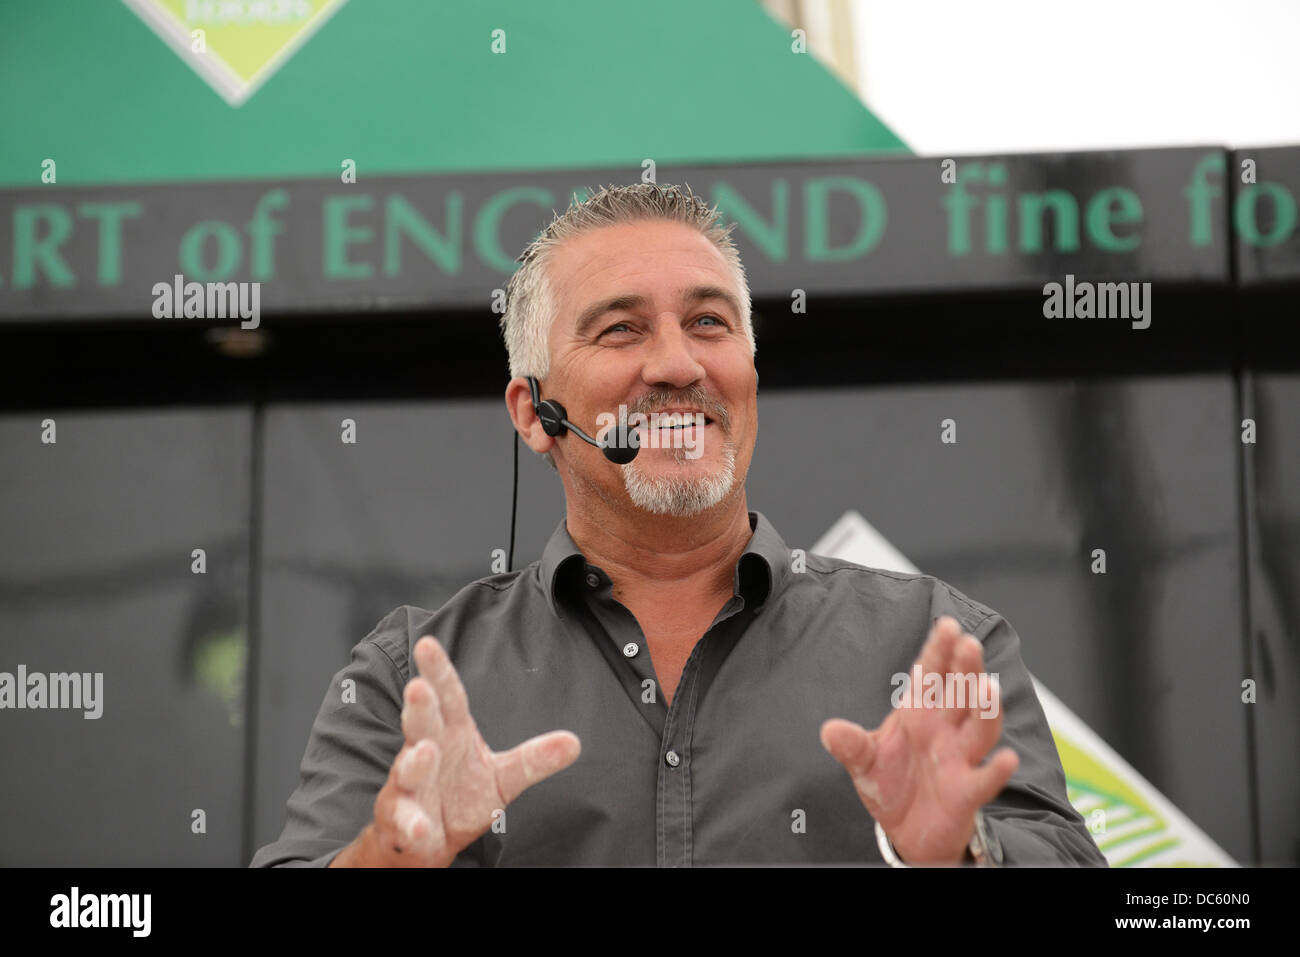 Shrewsbury Flower Show Uk 9th August 2013. Television celebrity baker Paul Hollywood demonstrating his baking. Credit: - Stock Image